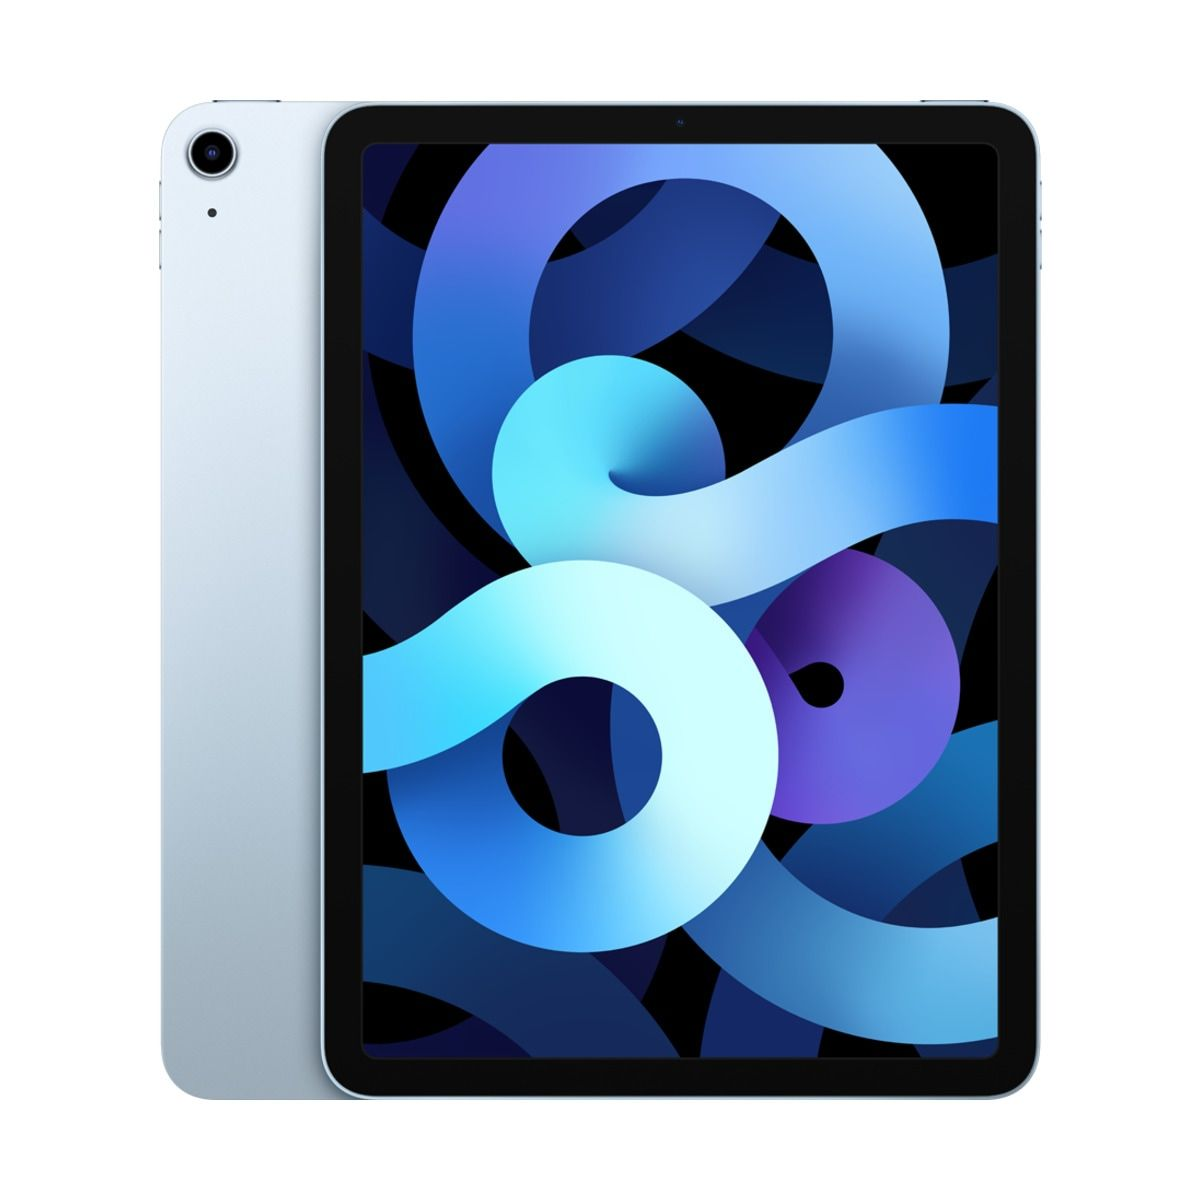 iPad Air Wi-Fi + Cell 256GB - Sky Blue / SK